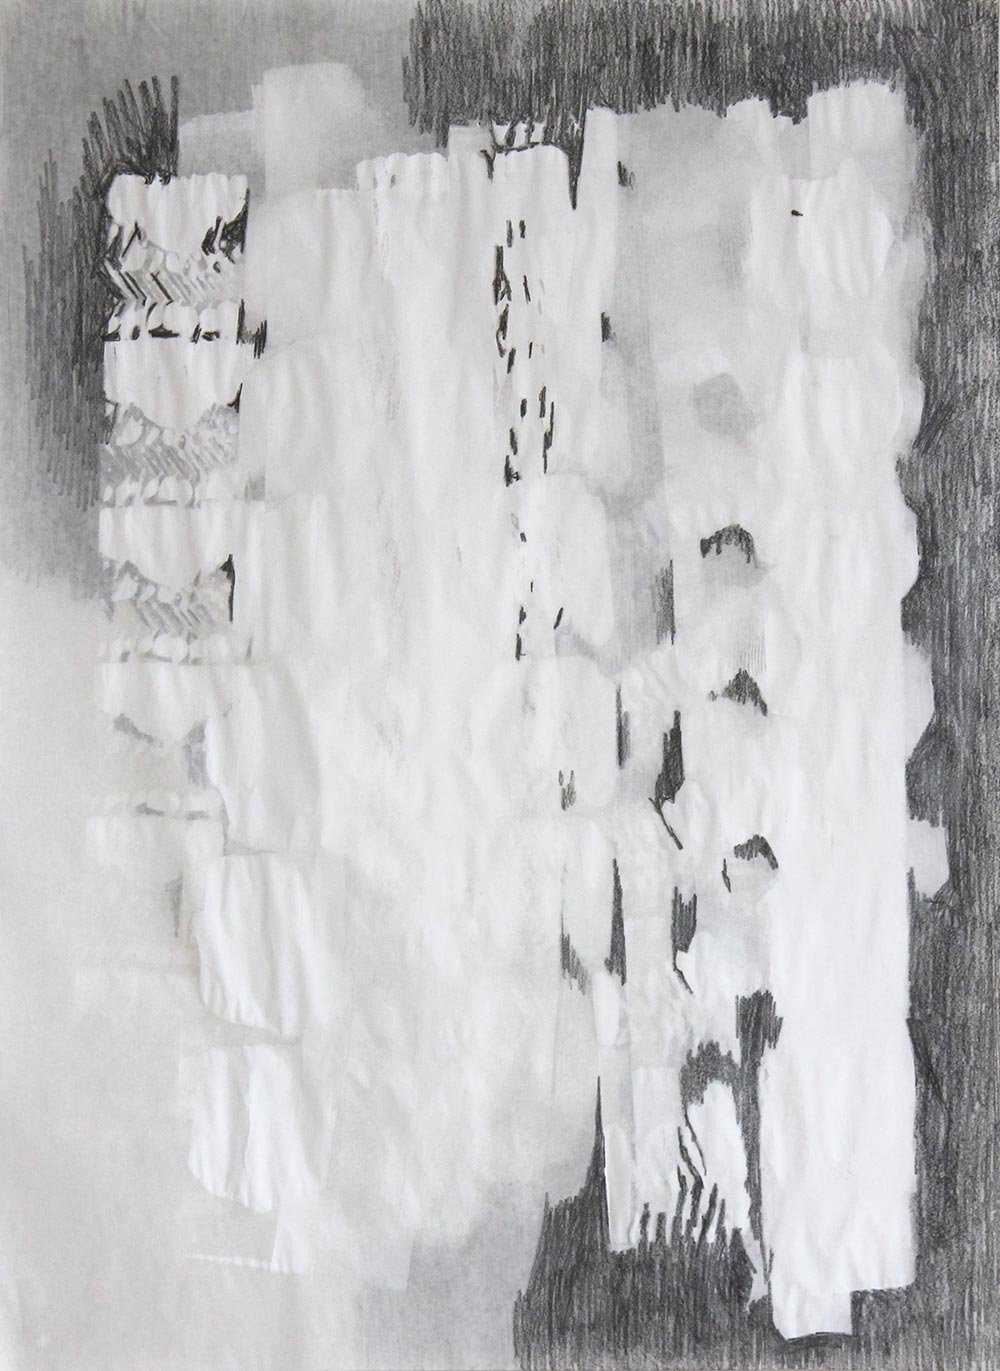 Carolina Koster / Where the light comes in_01 / Ink and graphite on both front and back of semi-transparant paper